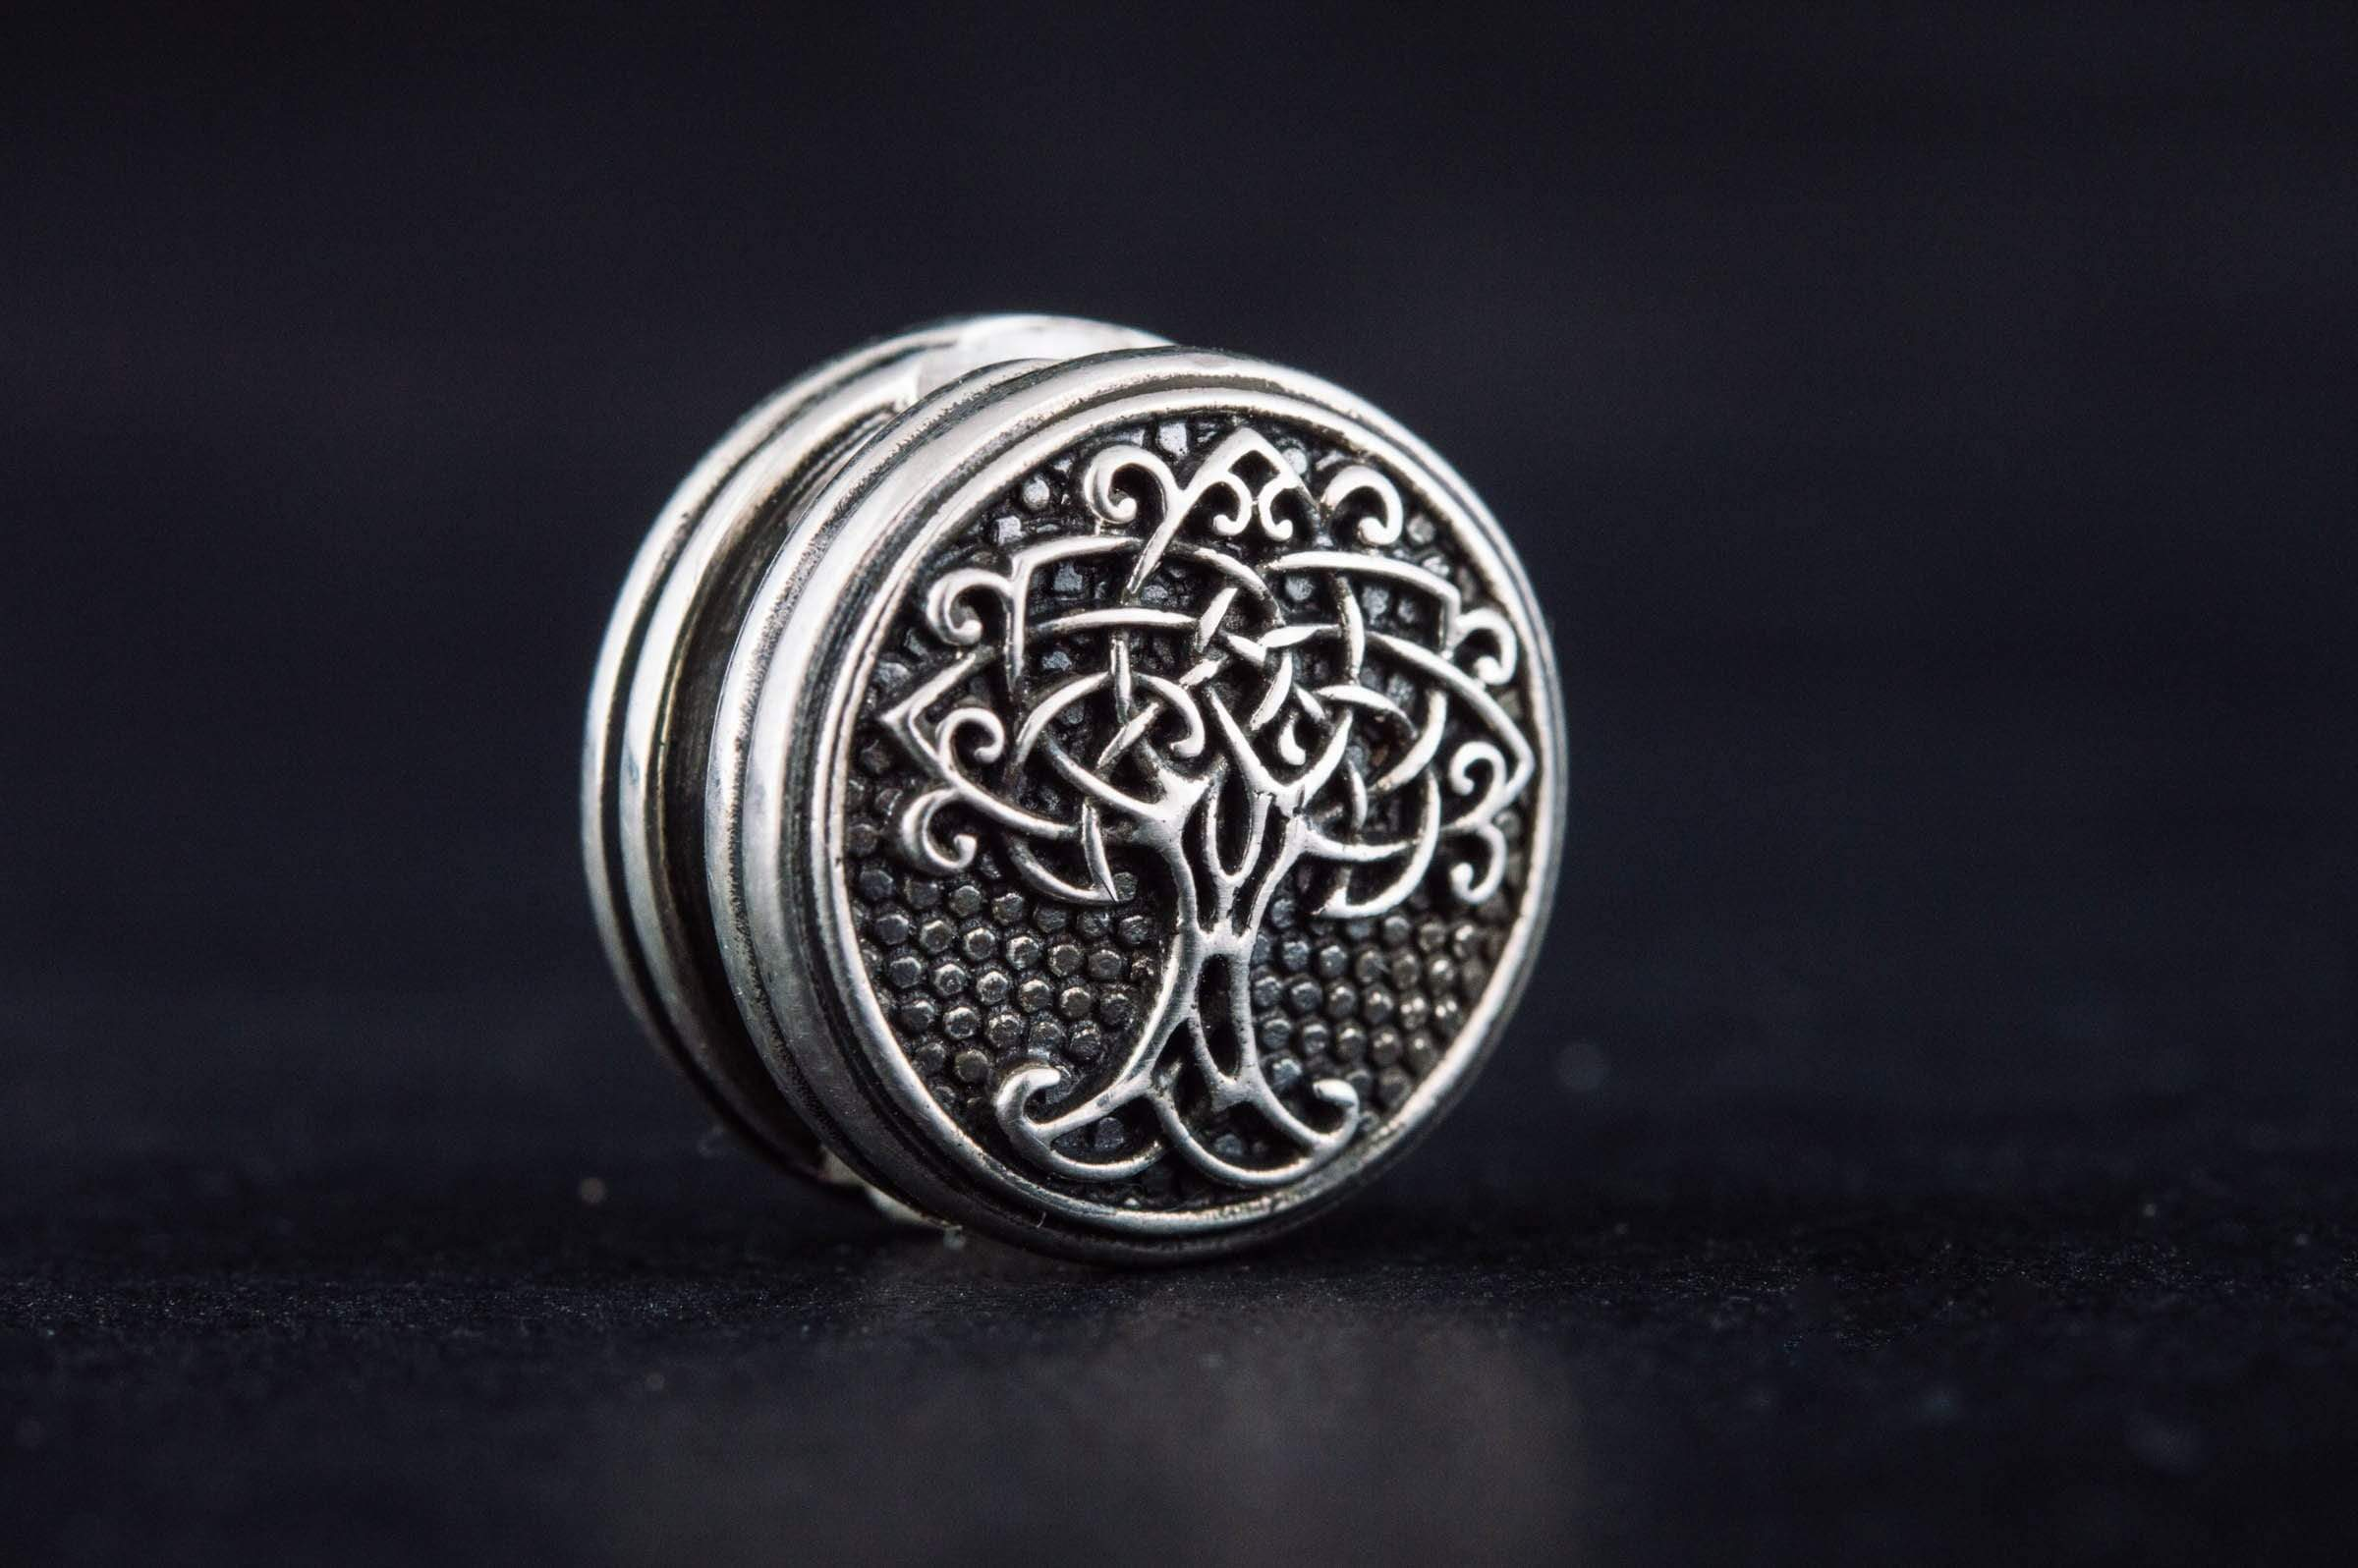 Ancient Smithy VW Beads Yggdrasil Symbol Bead Sterling Silver Jewelry